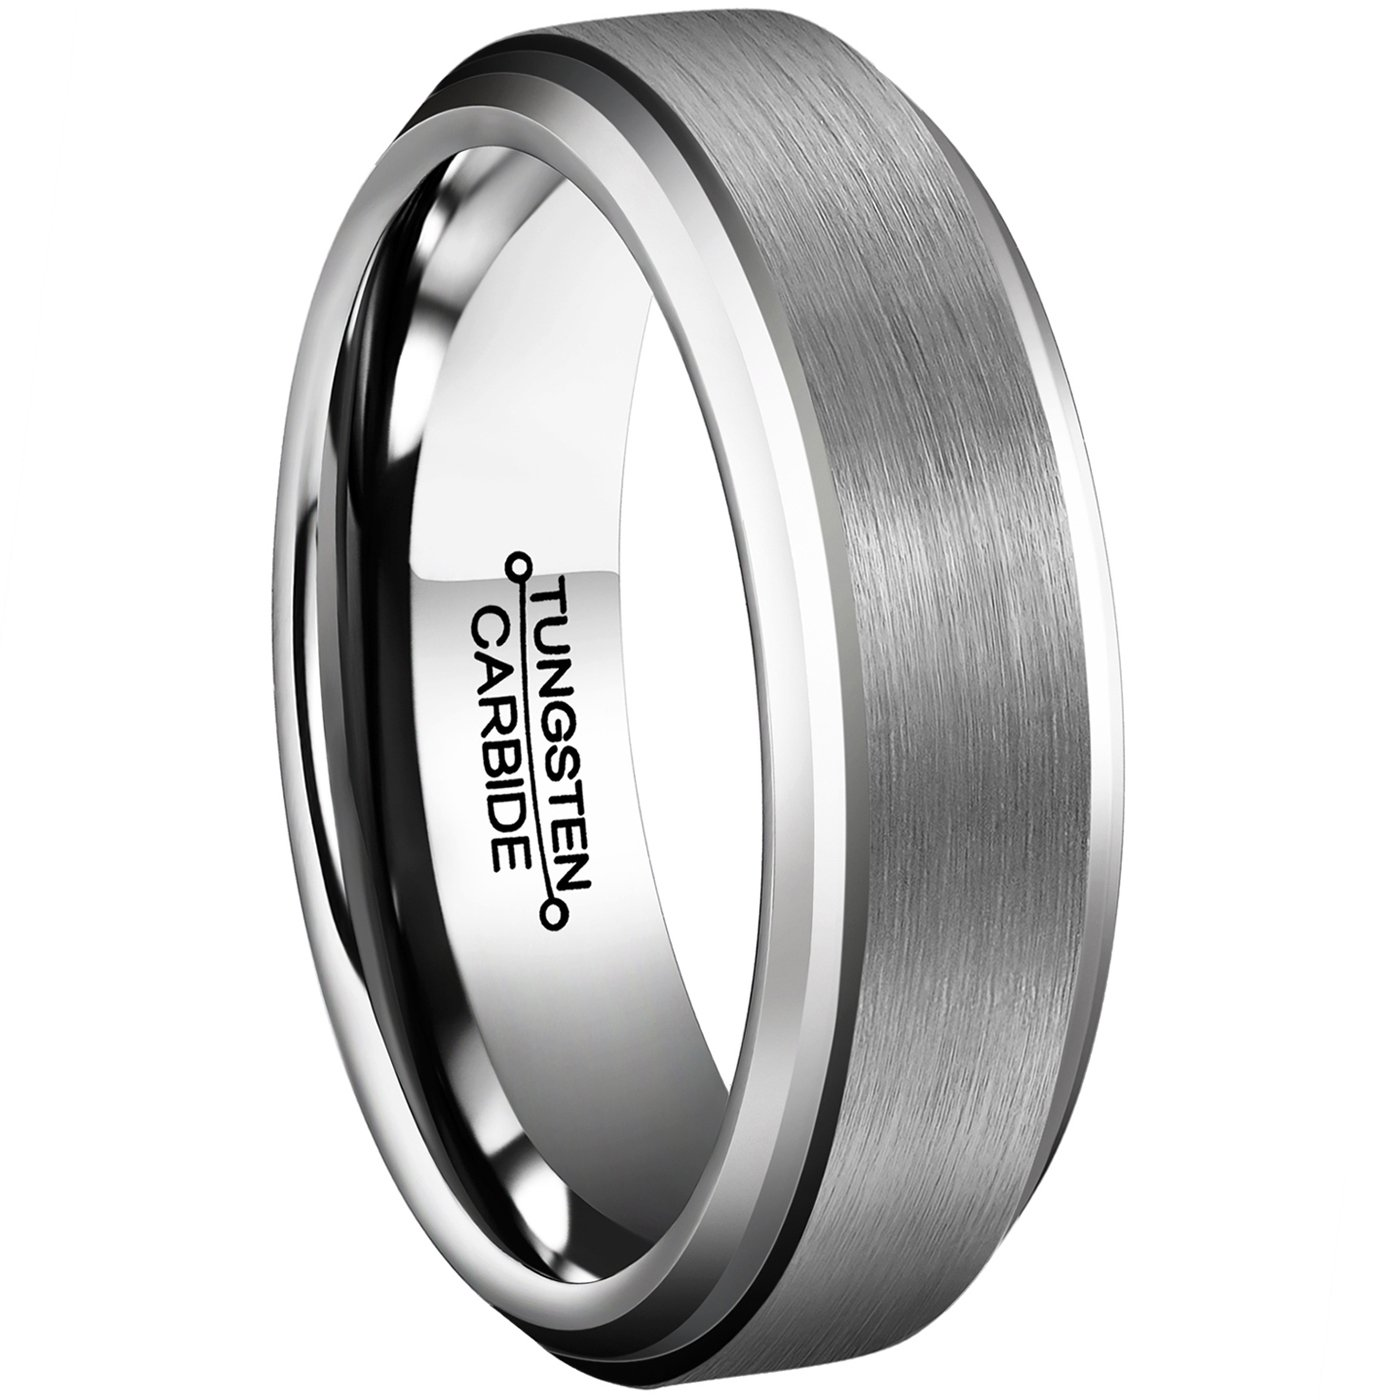 Men Rings 6mm Tungsten Carbide Brushed Matte Finish Beveled Edge Comfort Fit Wedding Engagement Band